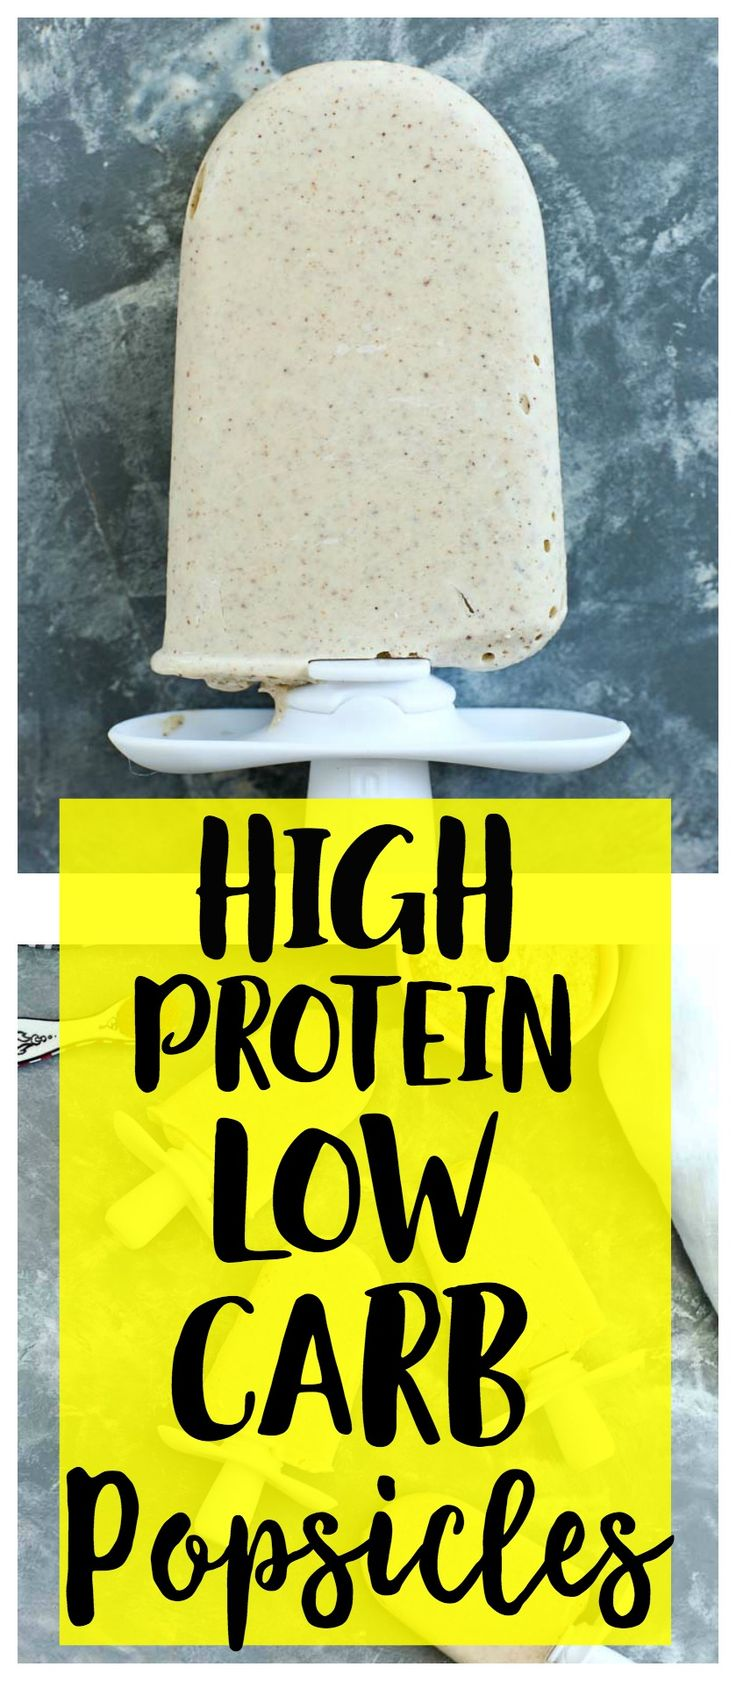 High protein low carb dairy free healthy popsicle recipe!